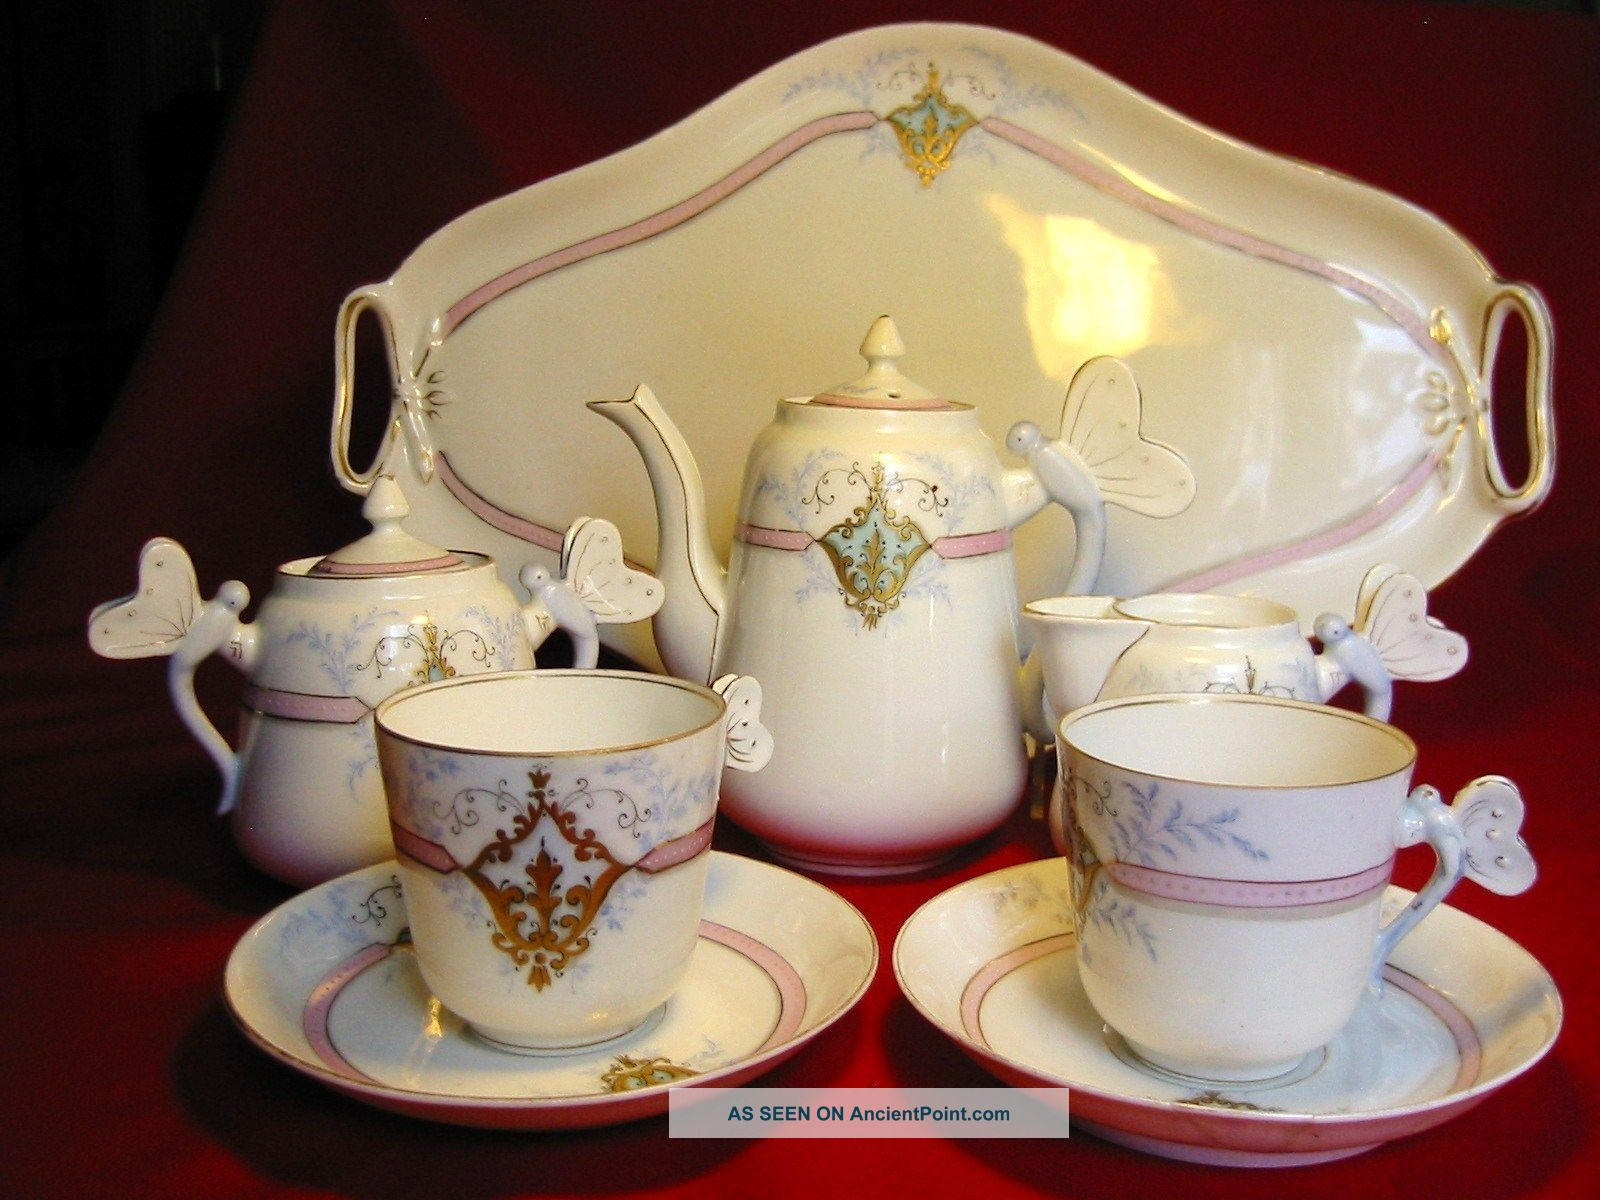 Antiq Russian 19c Tête - à - Tête Porcelain Set Tea For Two